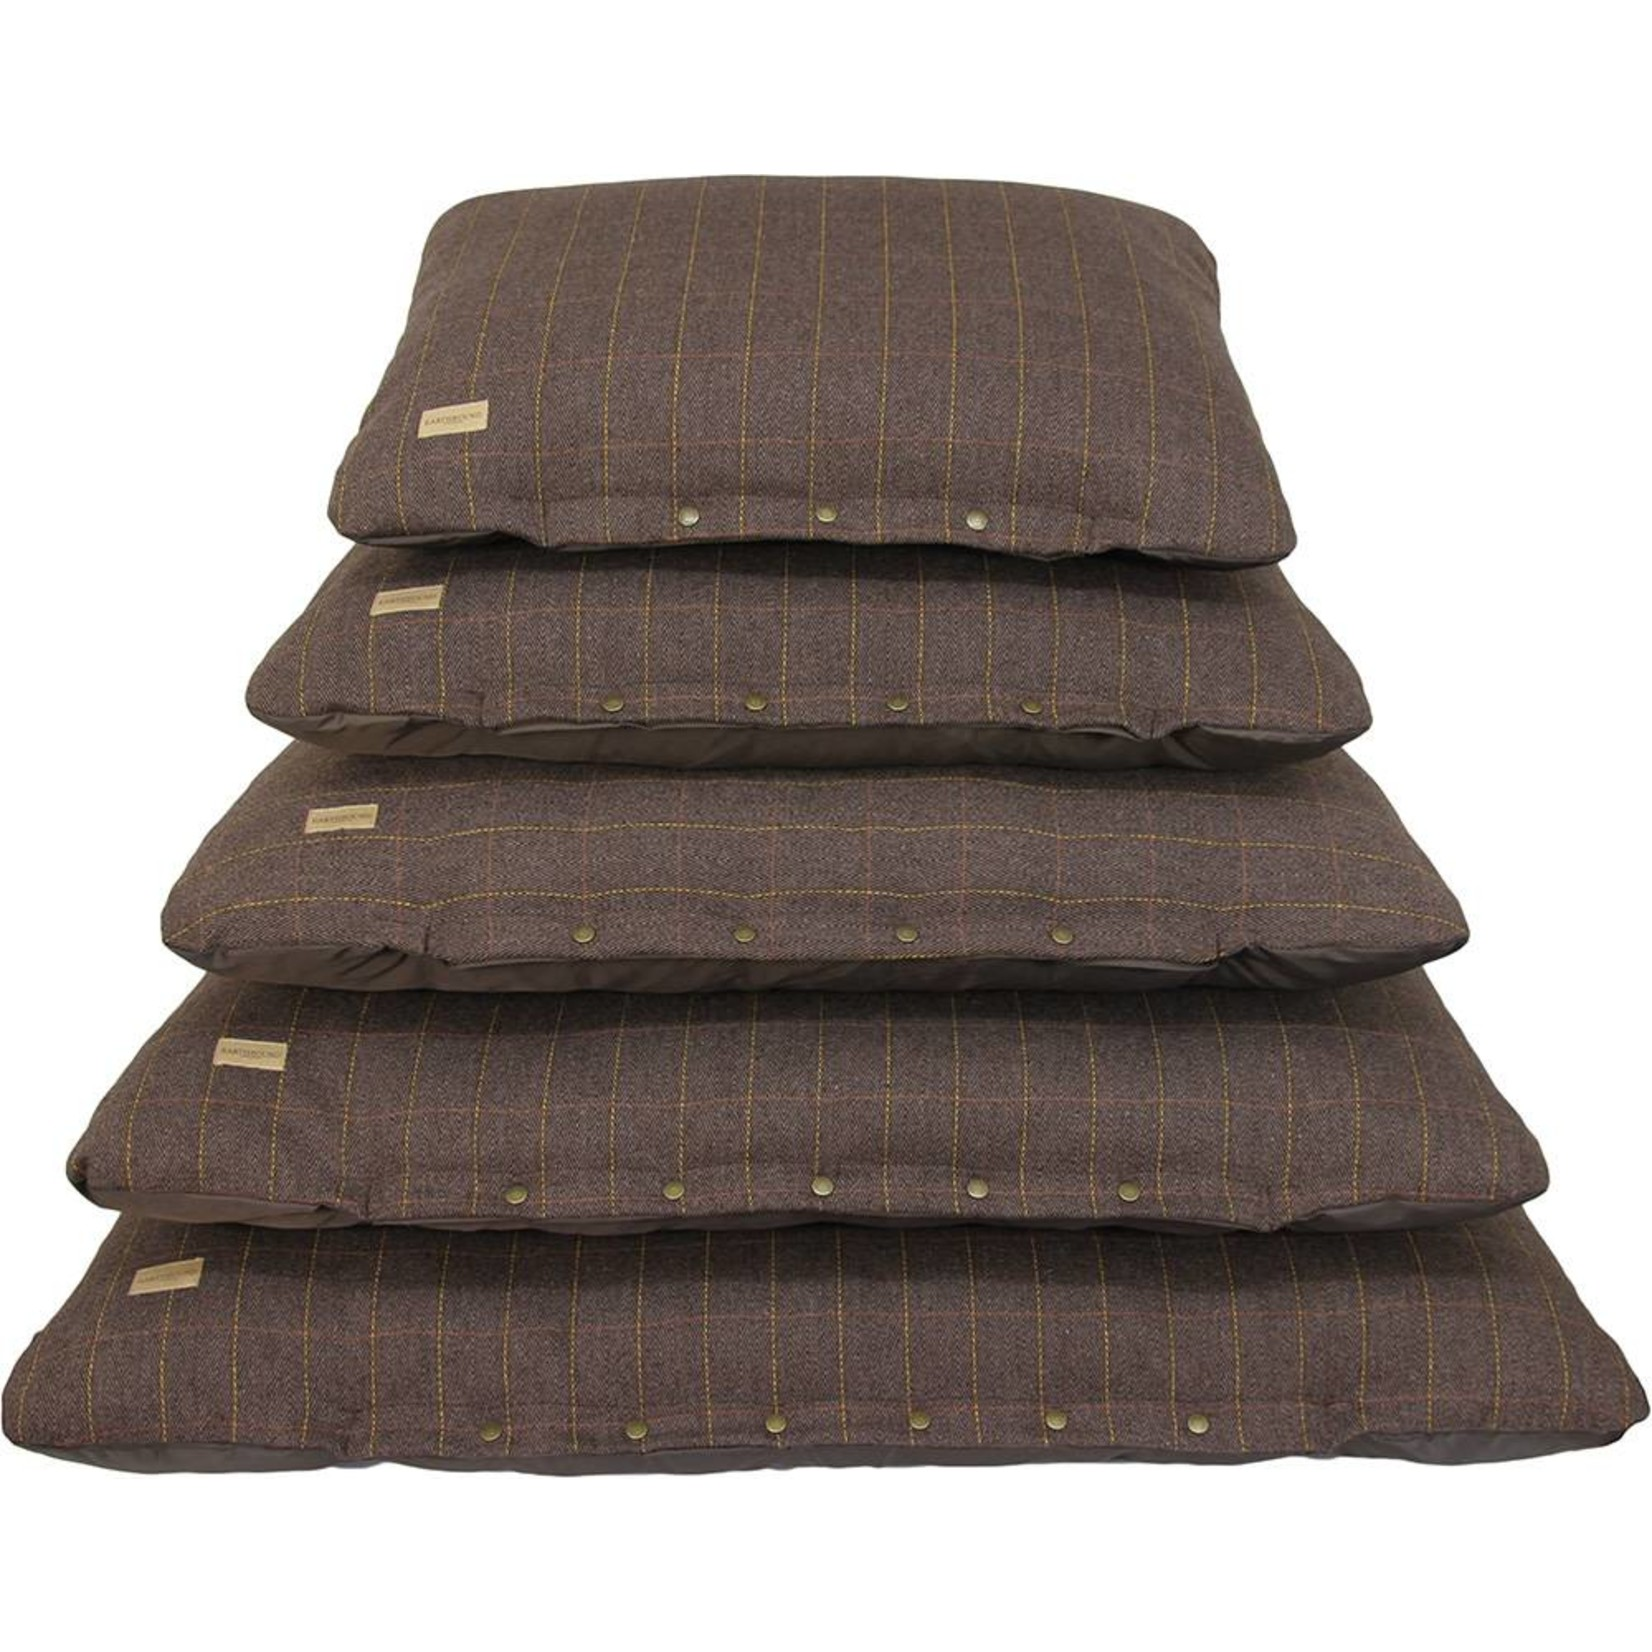 Earthbound Tweed Flat Pet Cushion, Brown